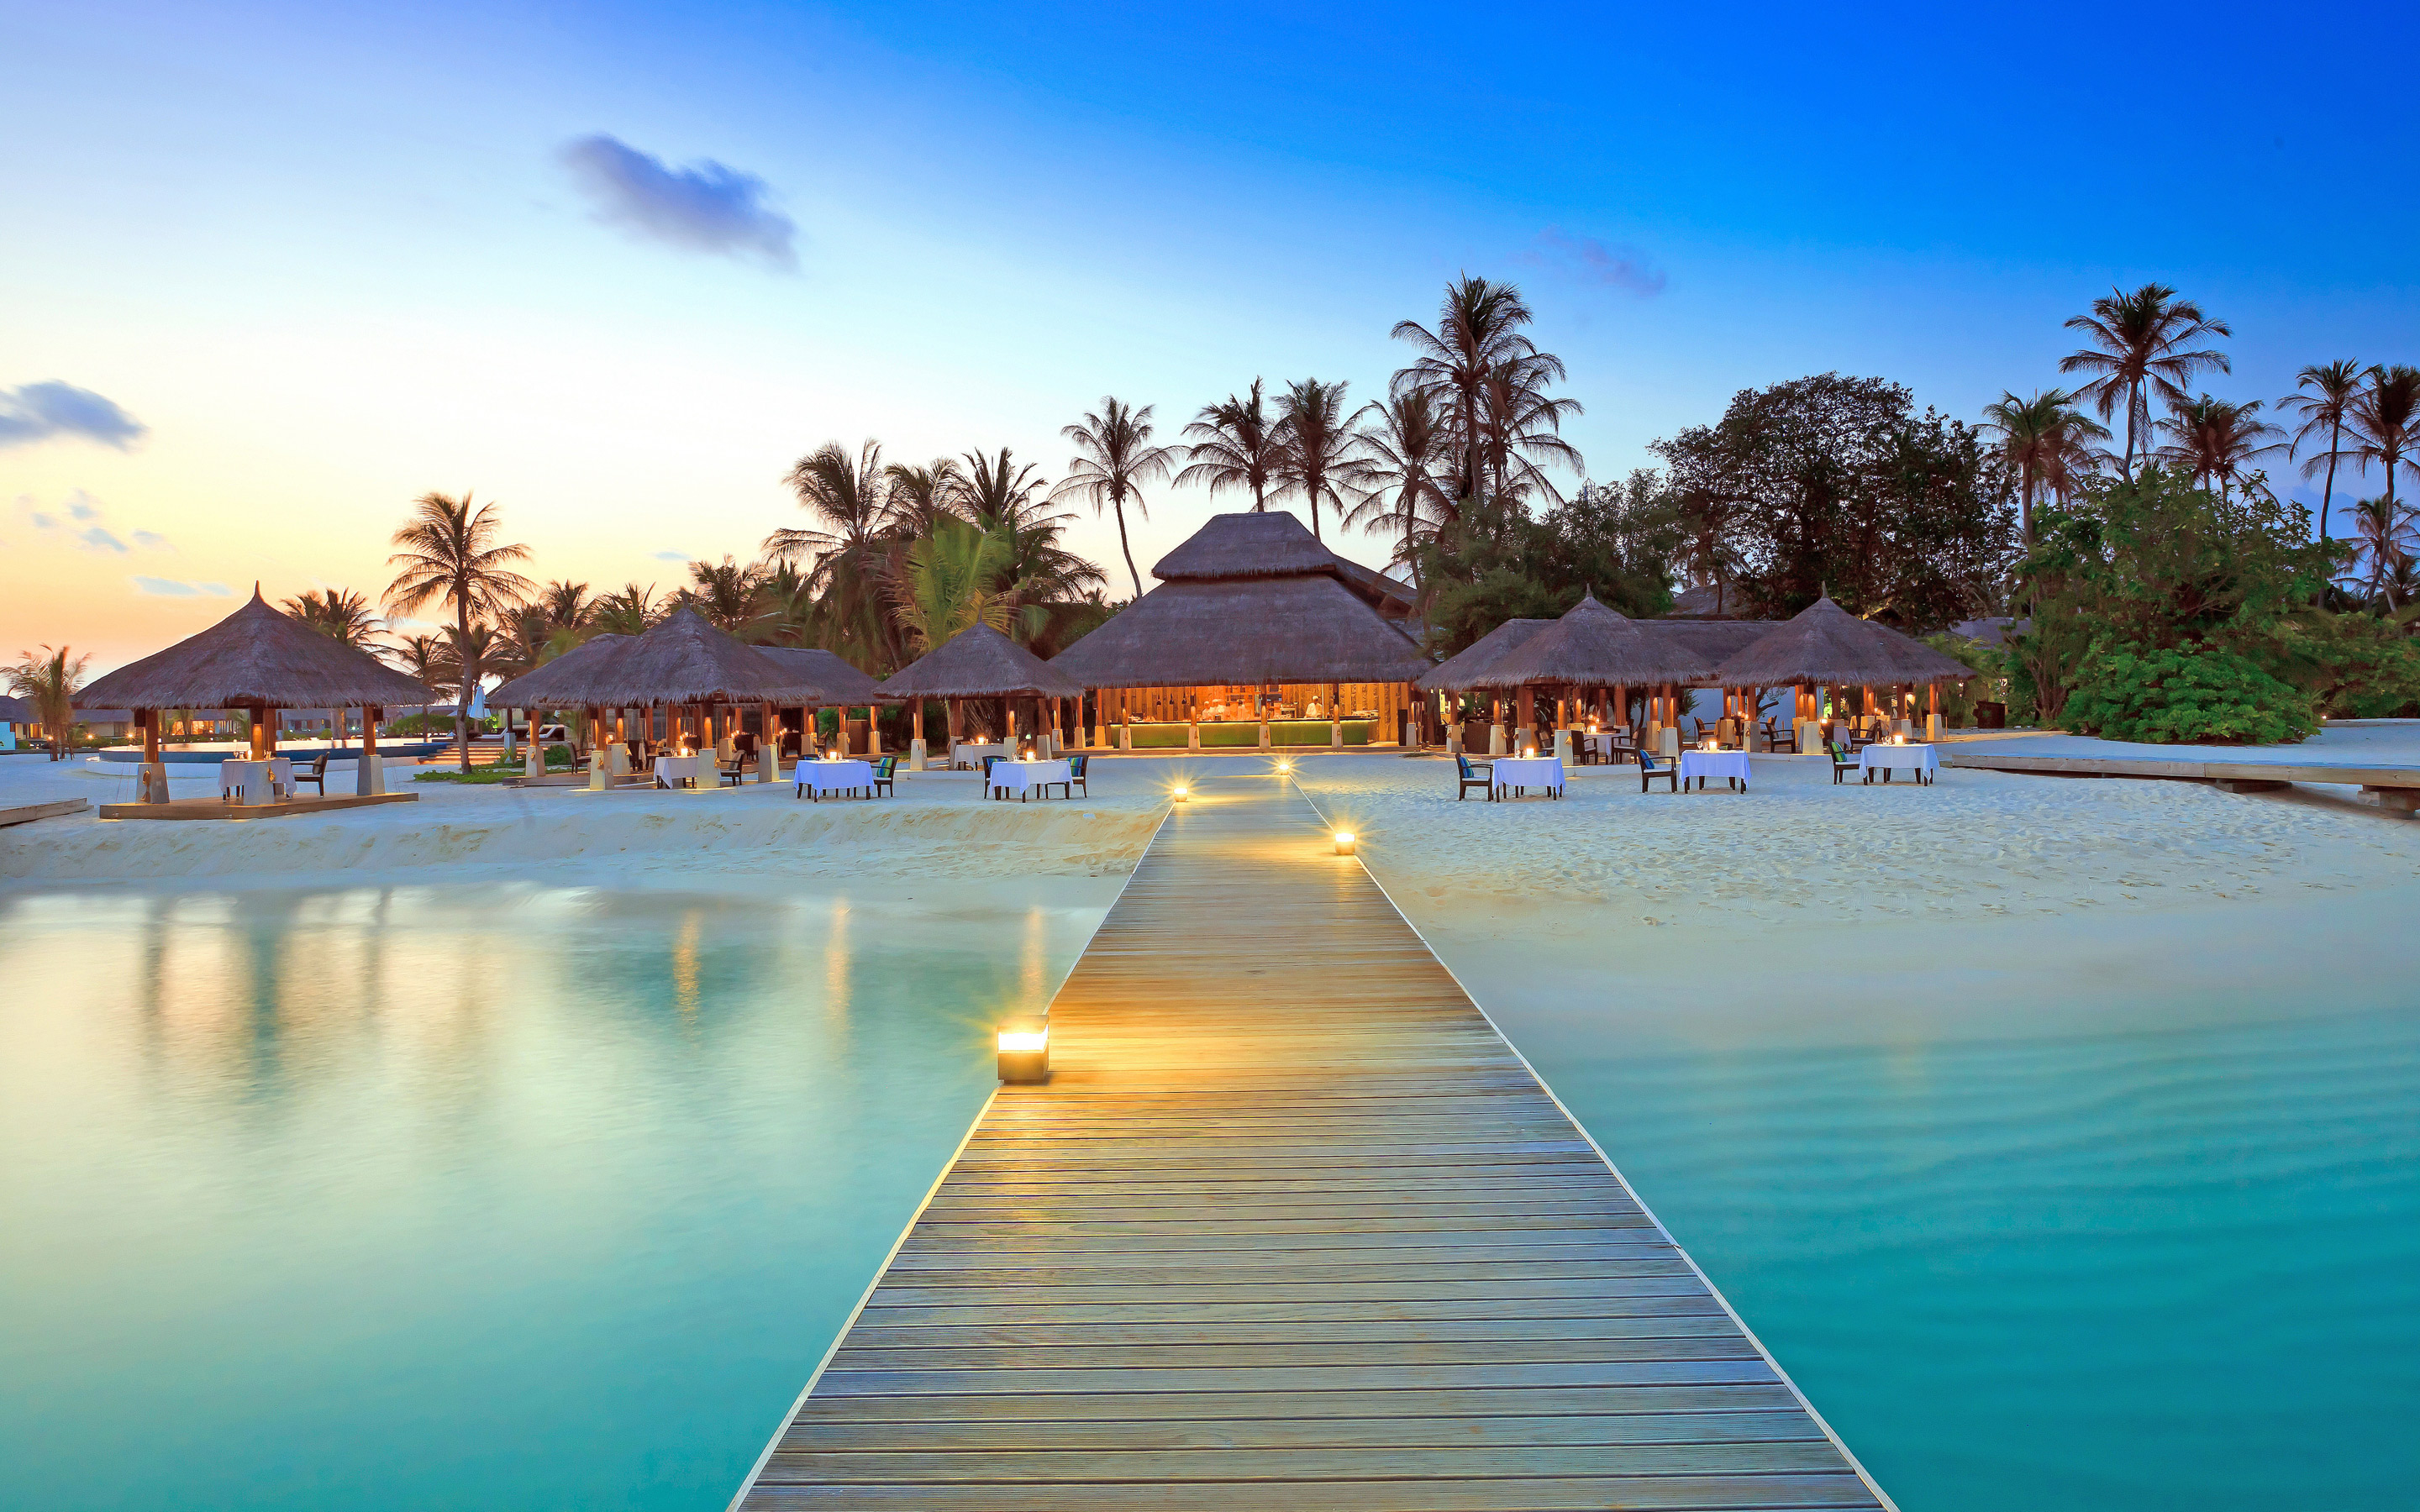 Maldive Islands Resort HD Wallpaper 2880x1800